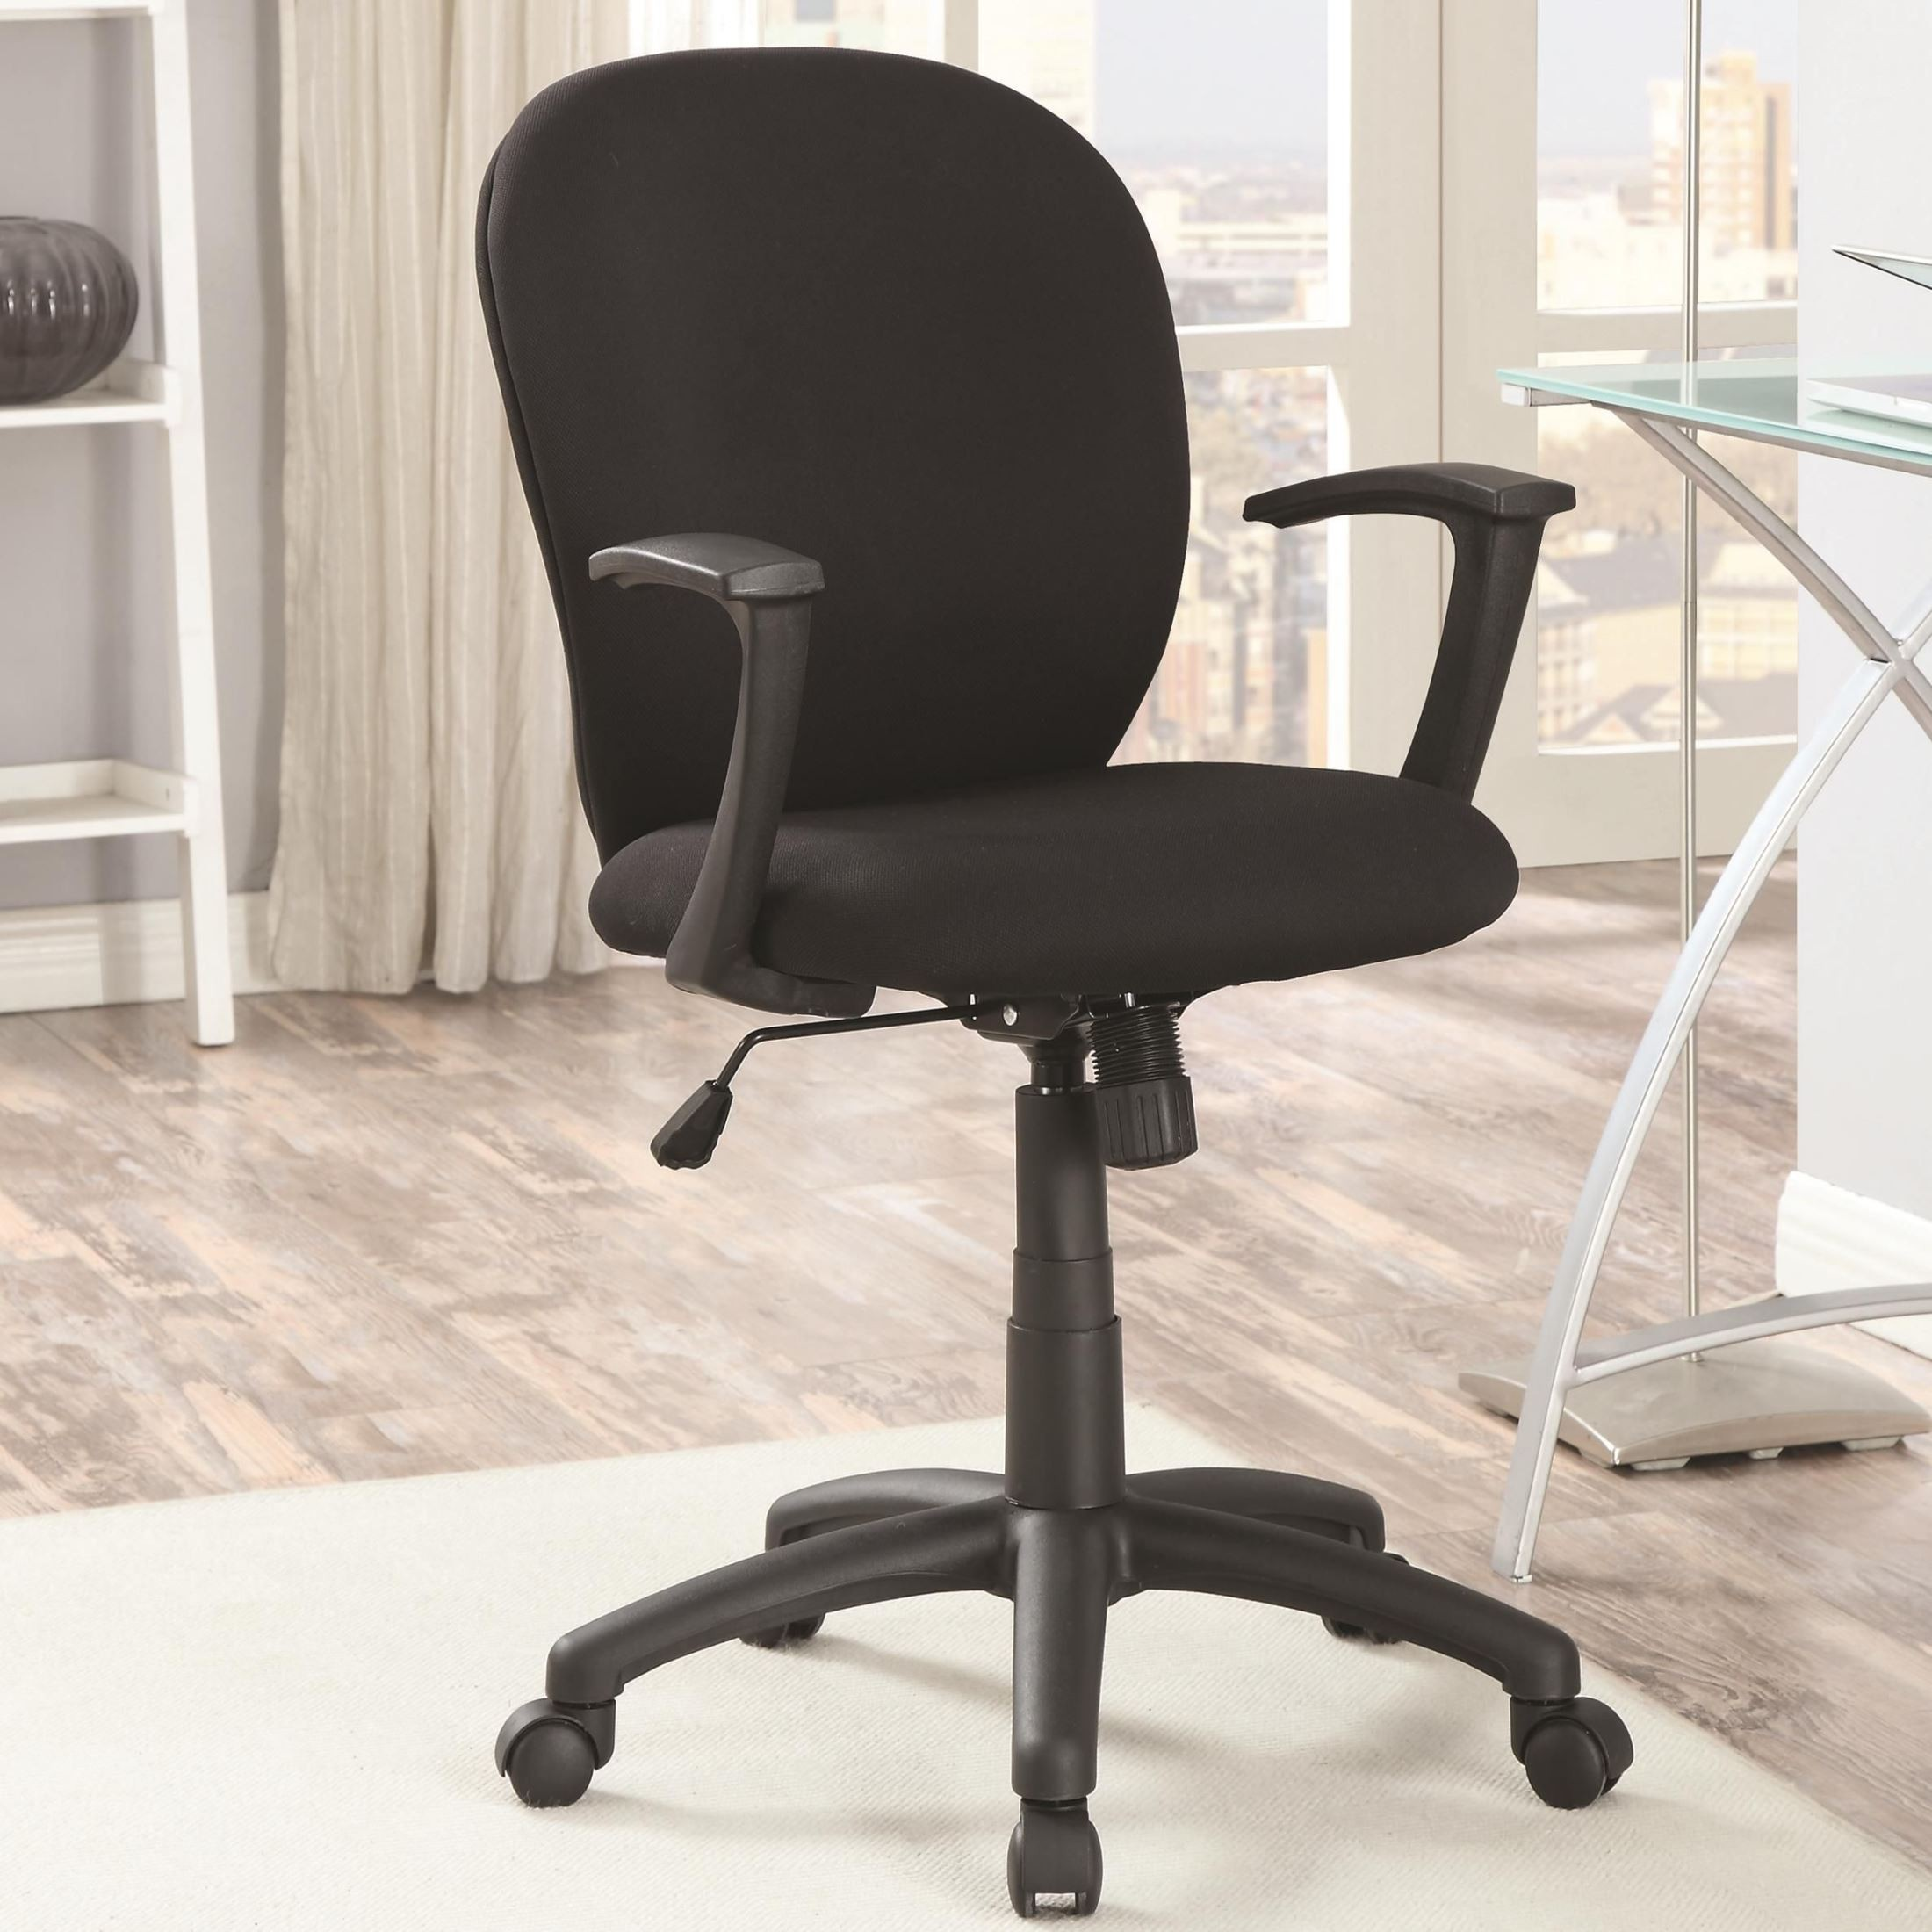 padded office chair high replacement cover 800537 black from coaster